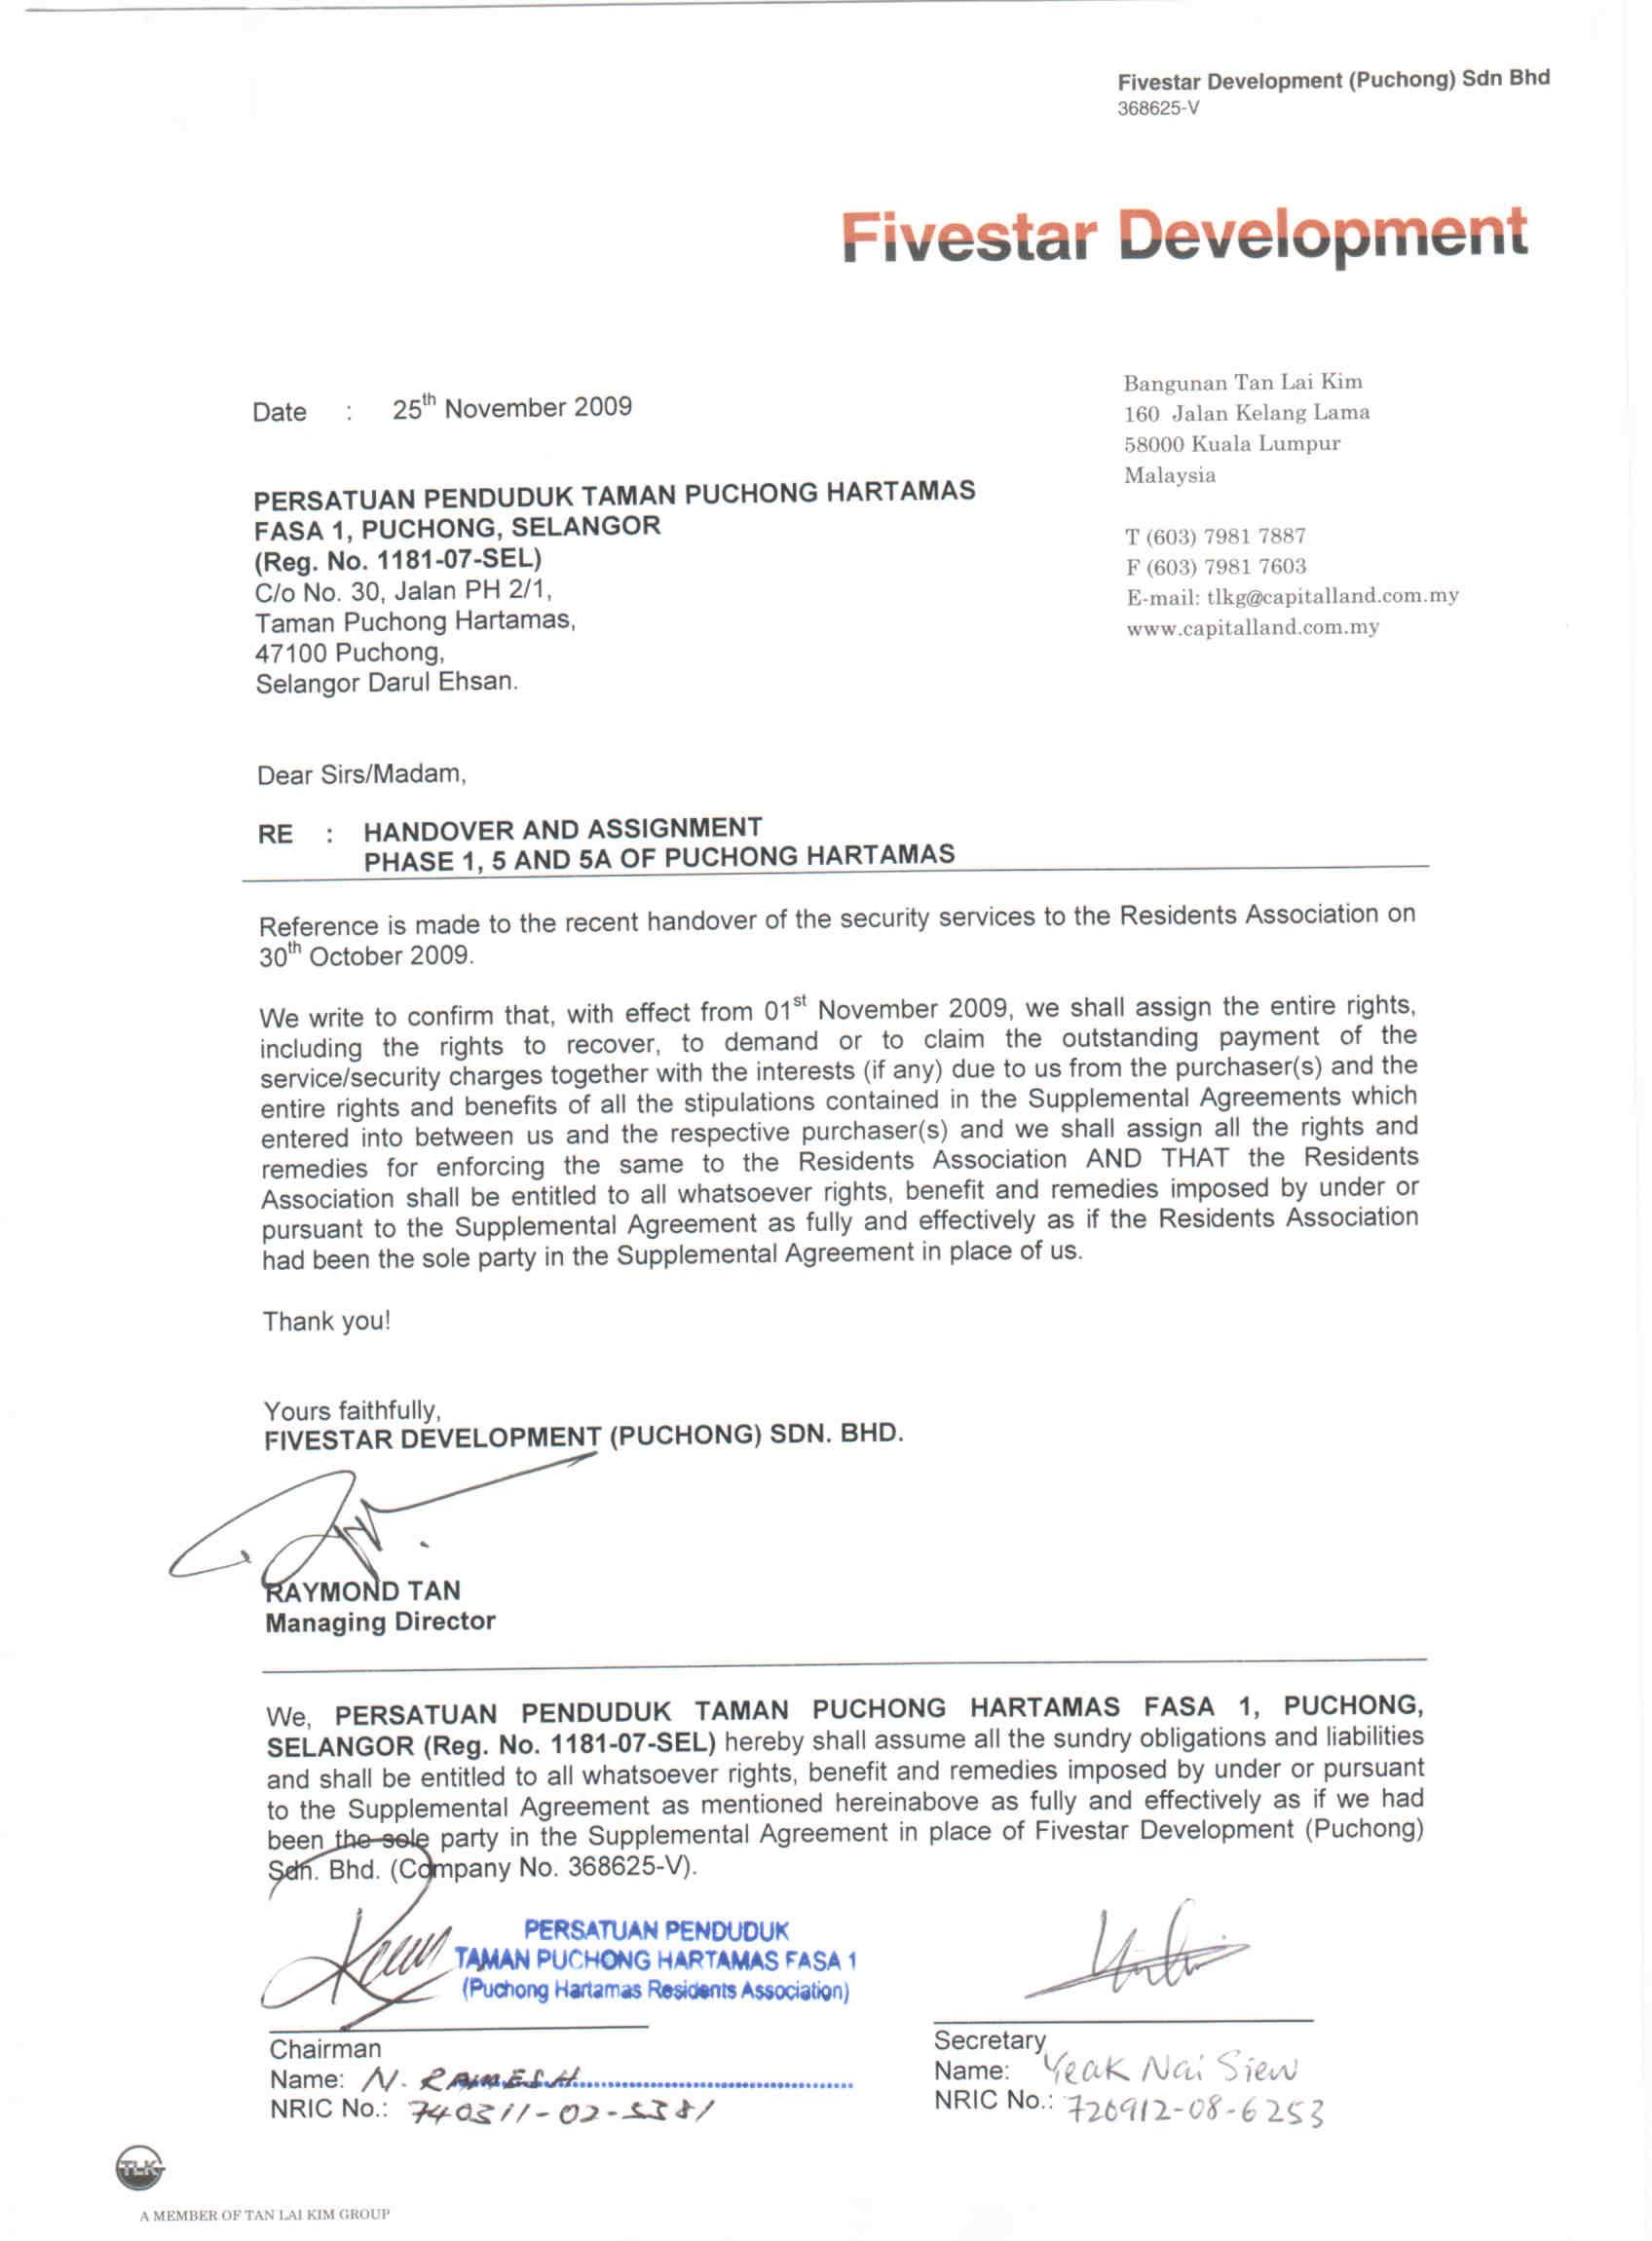 the official handover and assignment letter for securityformal letter template business l